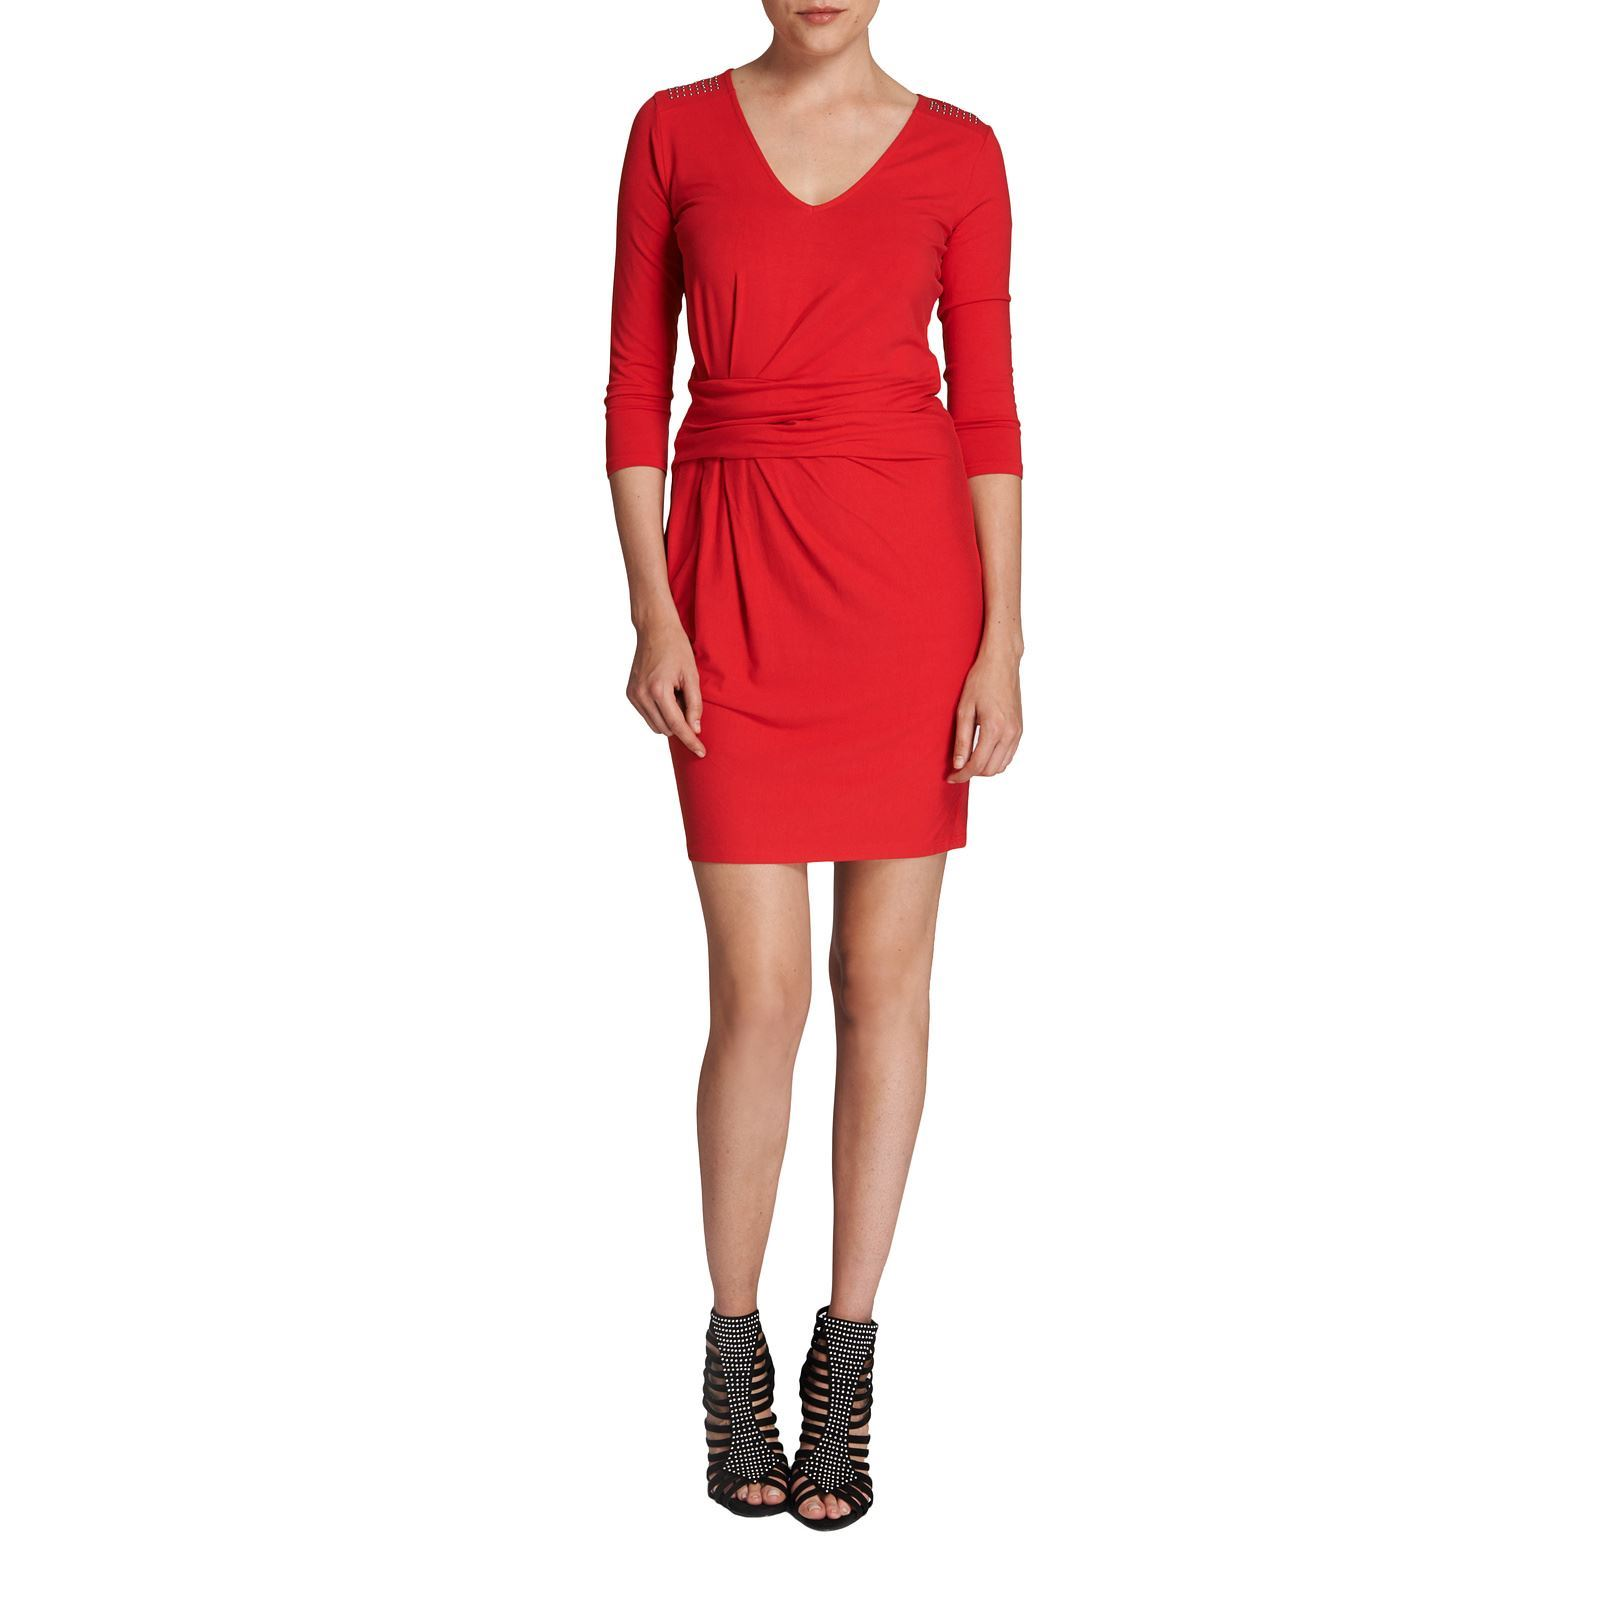 Robe de soiree rouge morgan